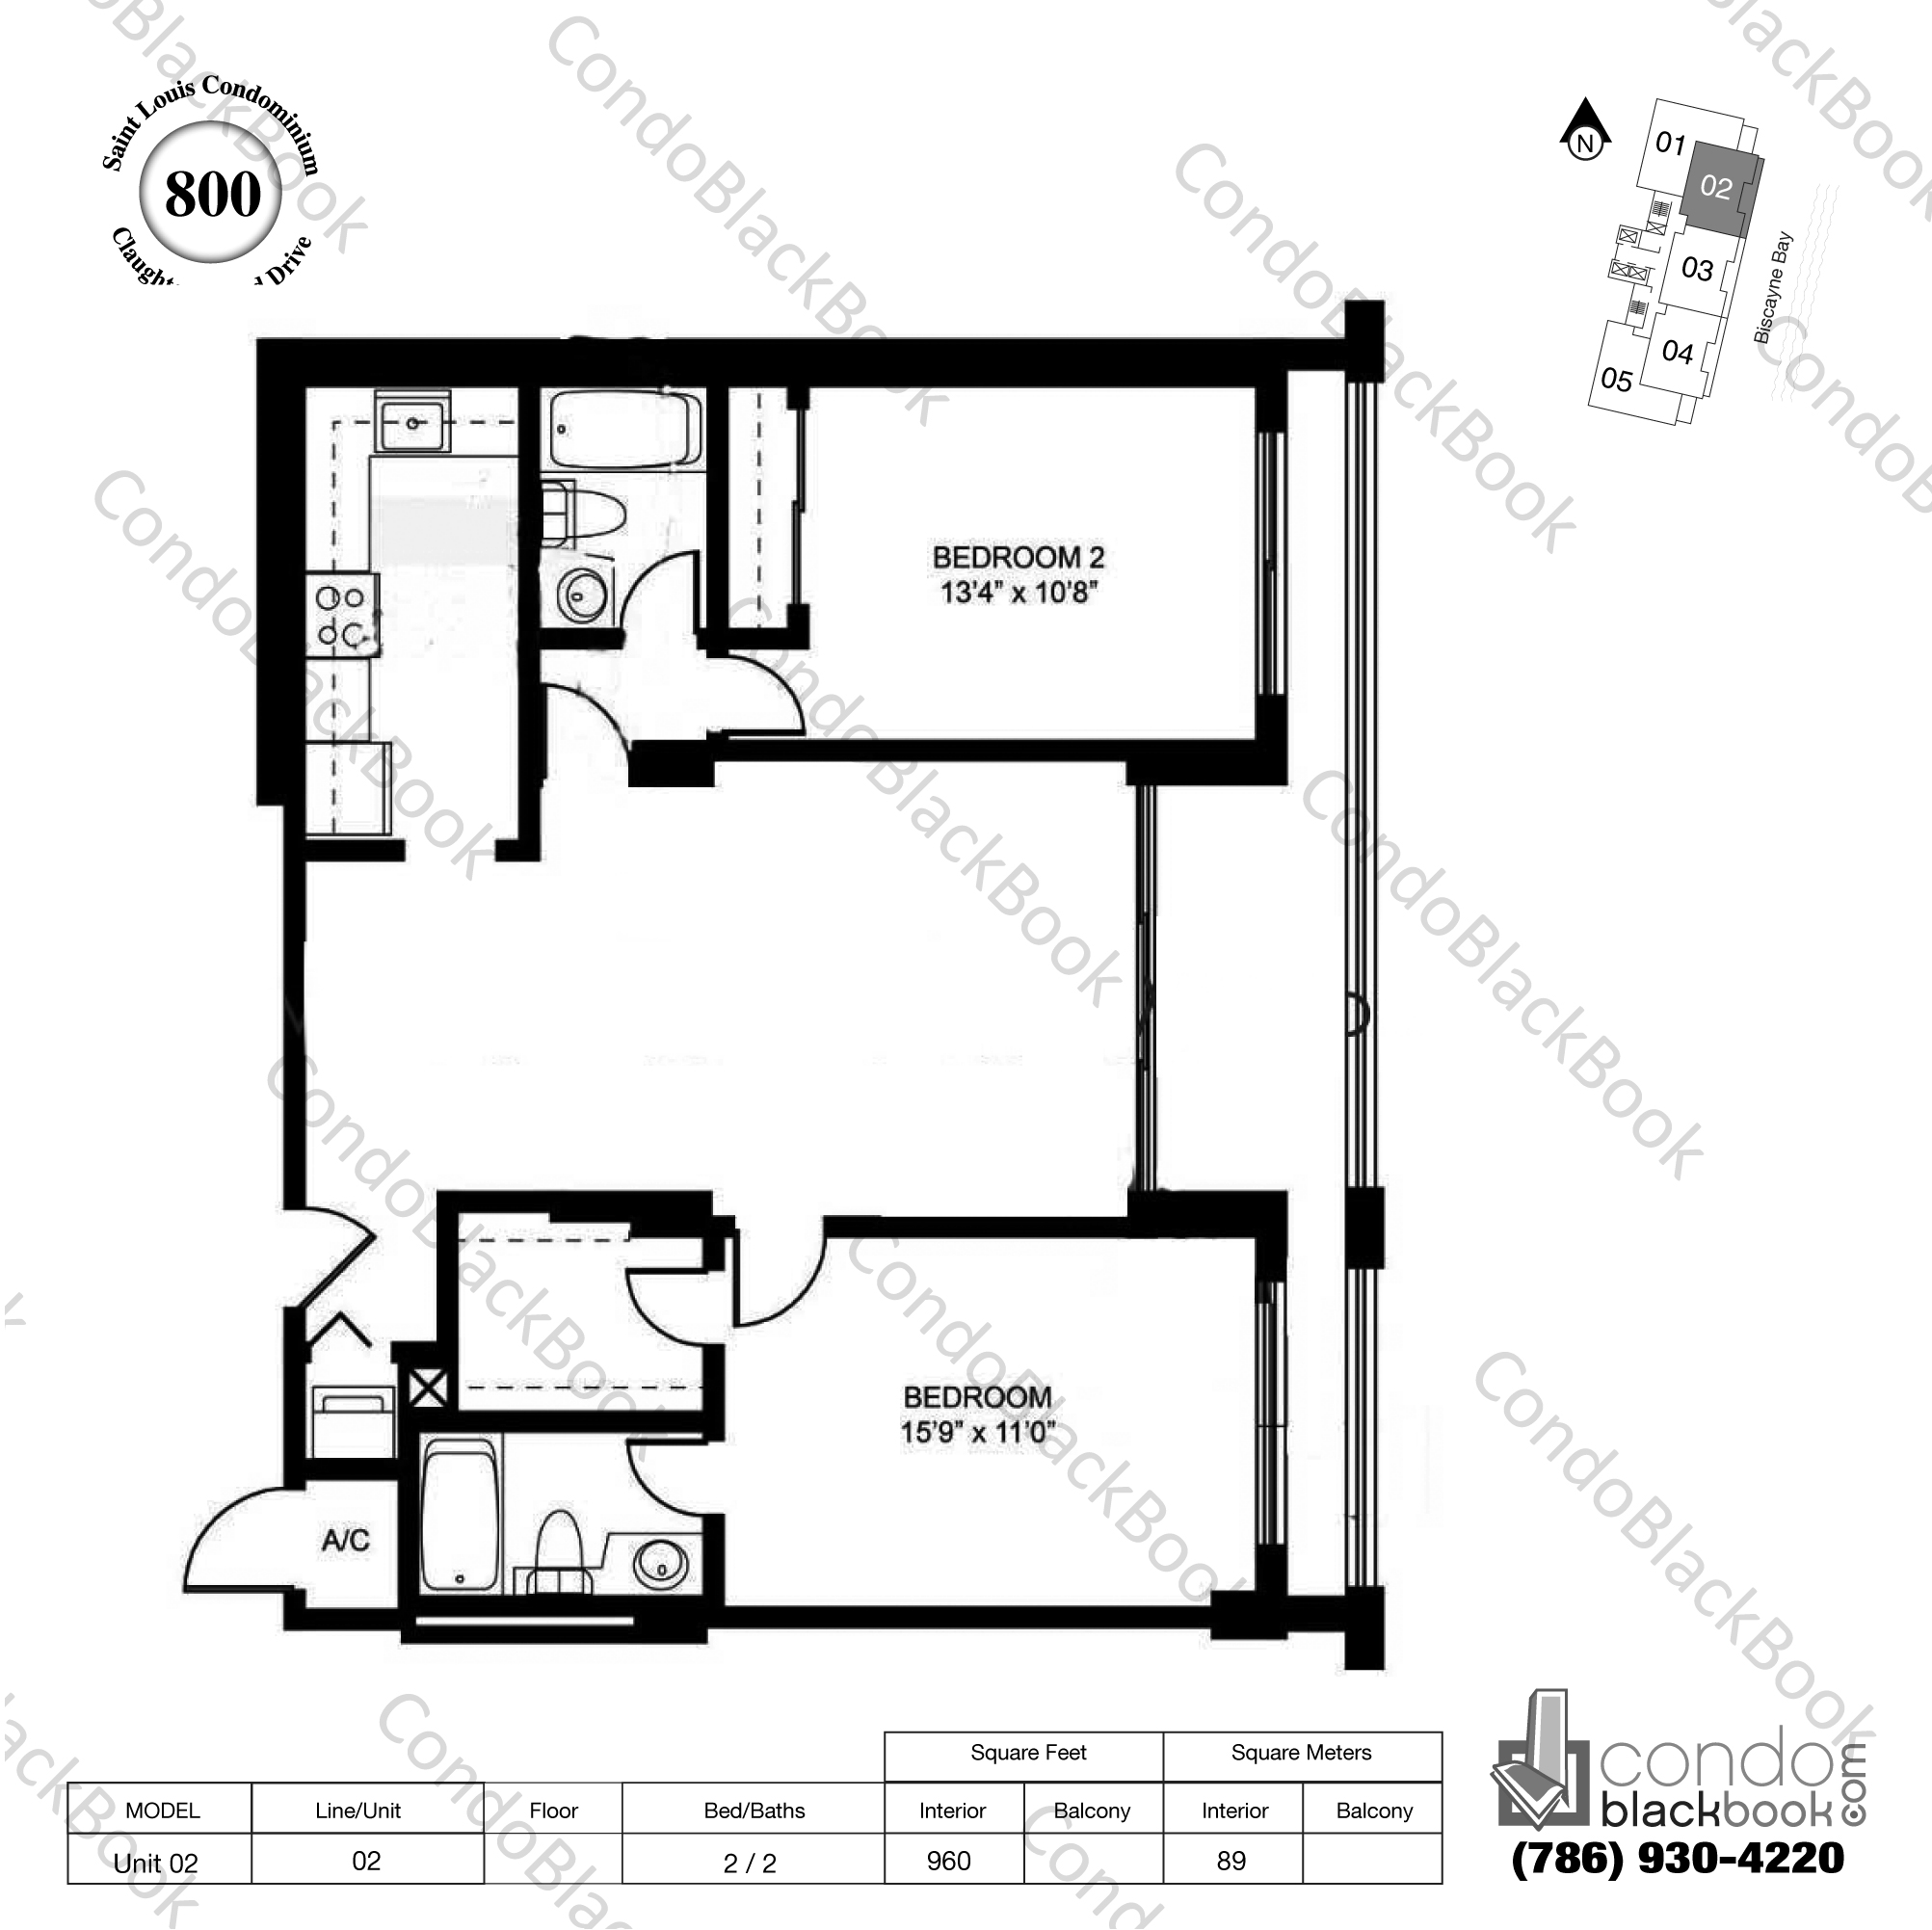 Floor plan for St Louis Condo Brickell Key Miami, model Unit 02, line 02, 2 / 2 bedrooms, 960 sq ft